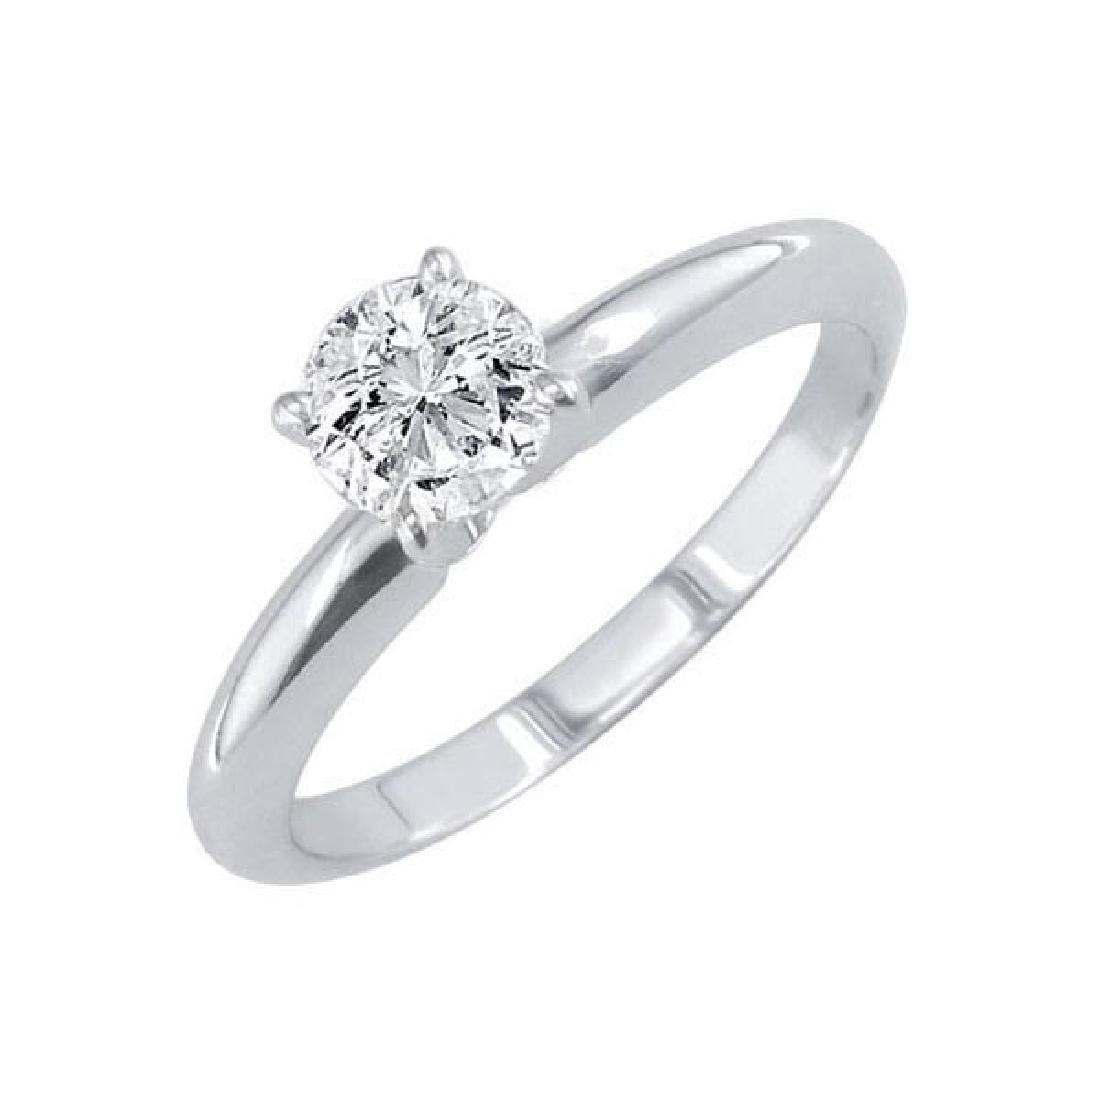 Certified 1.2 CTW Round Diamond Solitaire 14k Ring E/I1